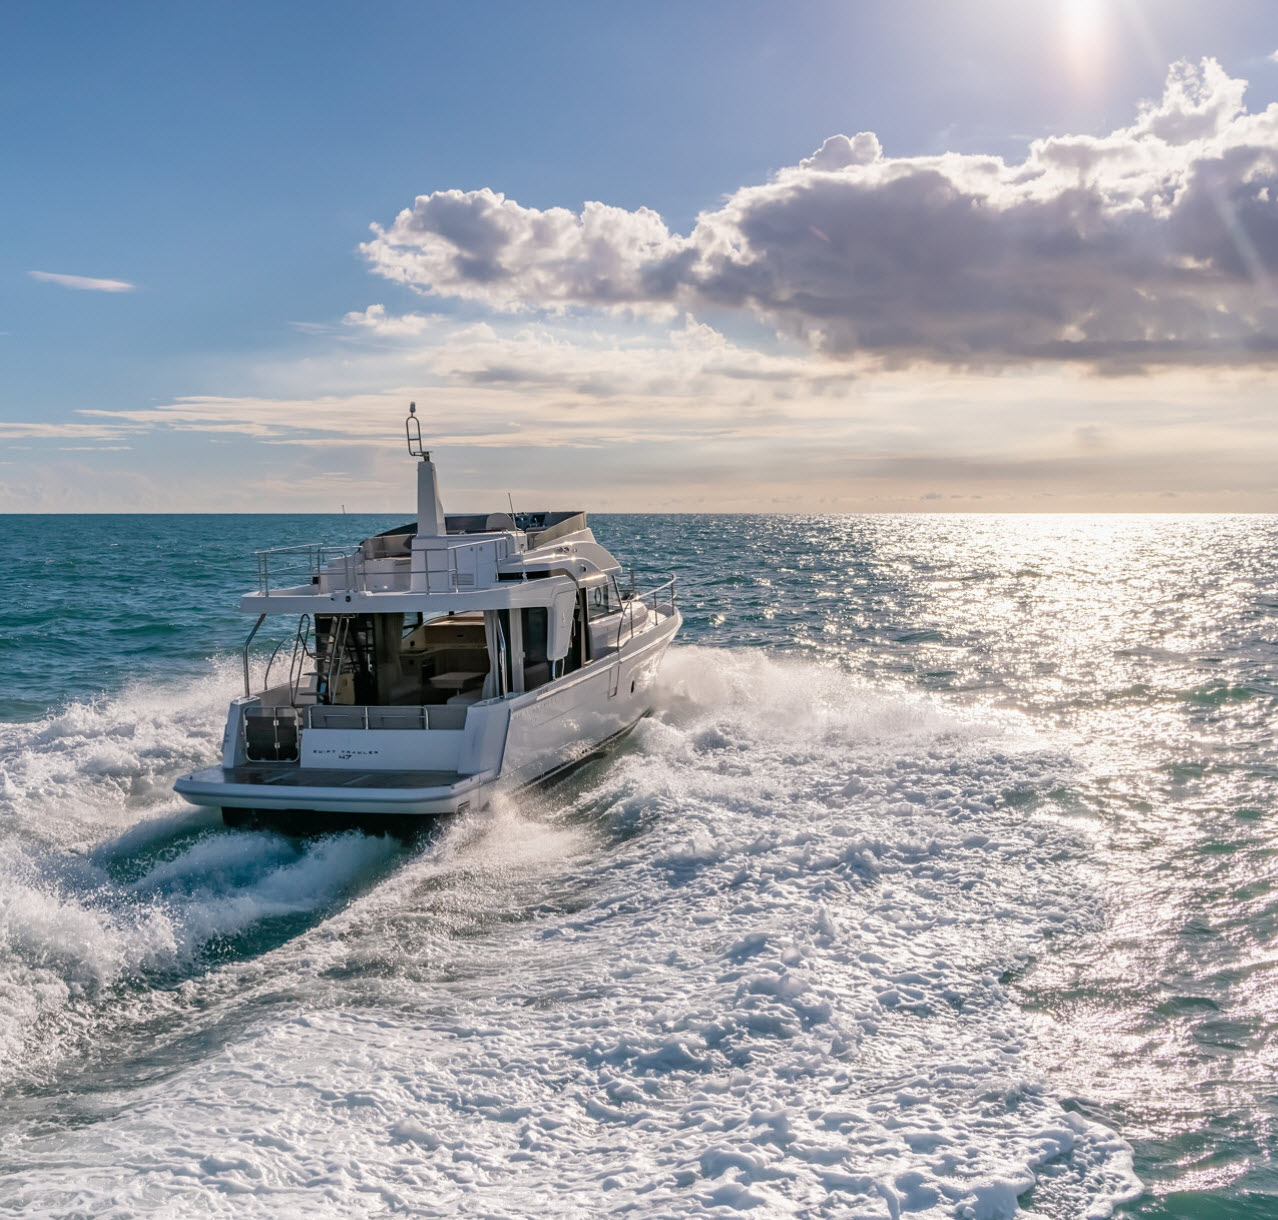 CHARTER OWNERSHIP - OWN YOUR DREAM BOAT!